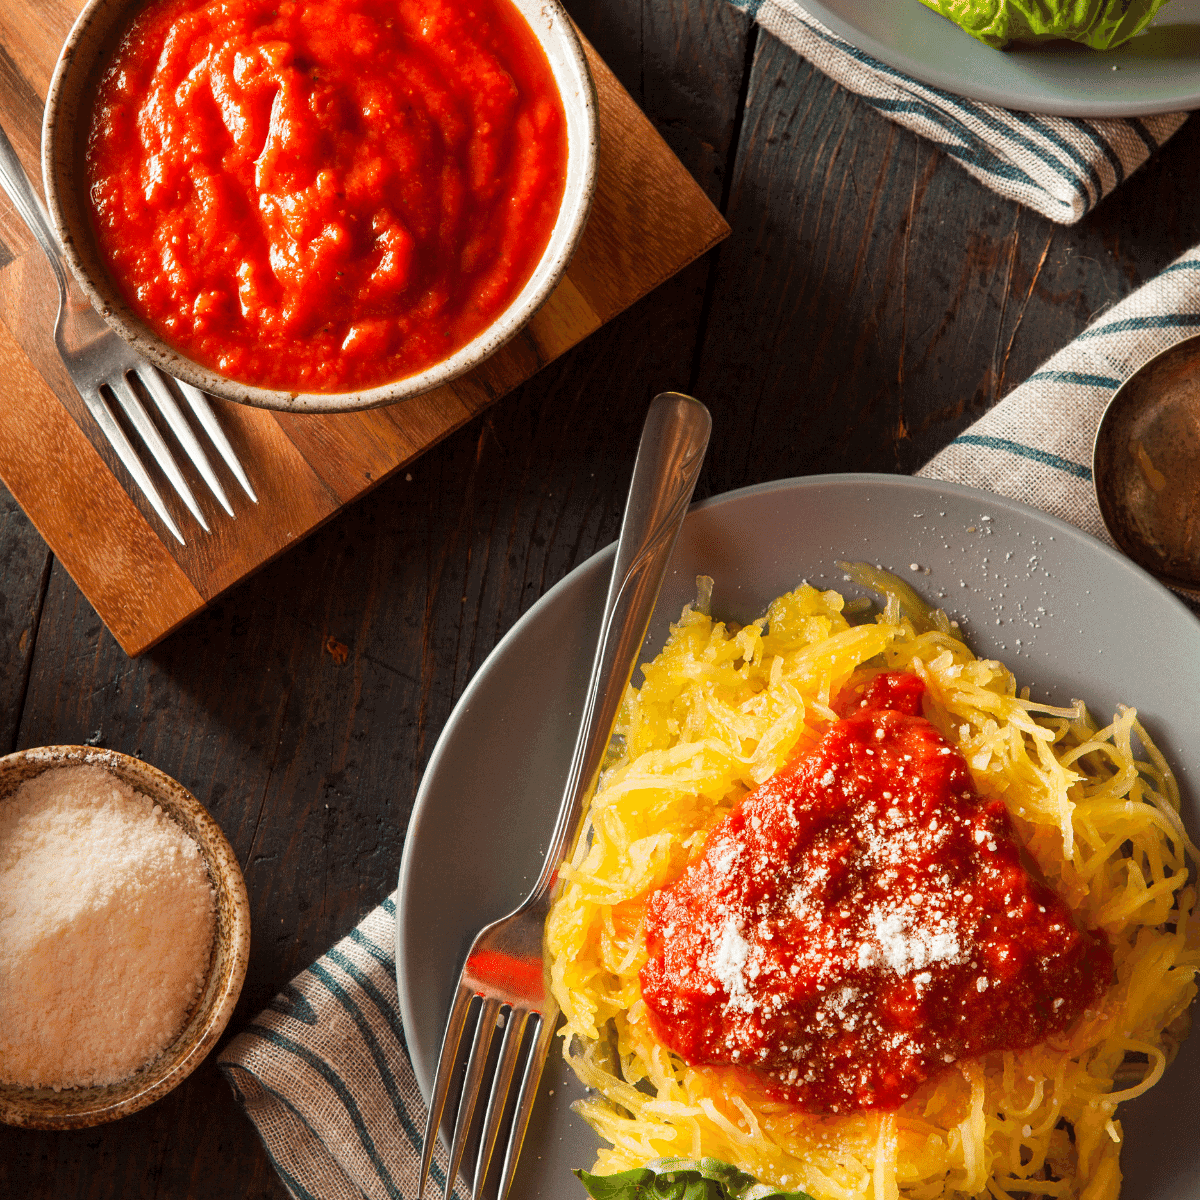 A plate full of delicious spaghetti squash noodles topped with parmesan cheese after it was cooked in the instant pot in only 8 minutes